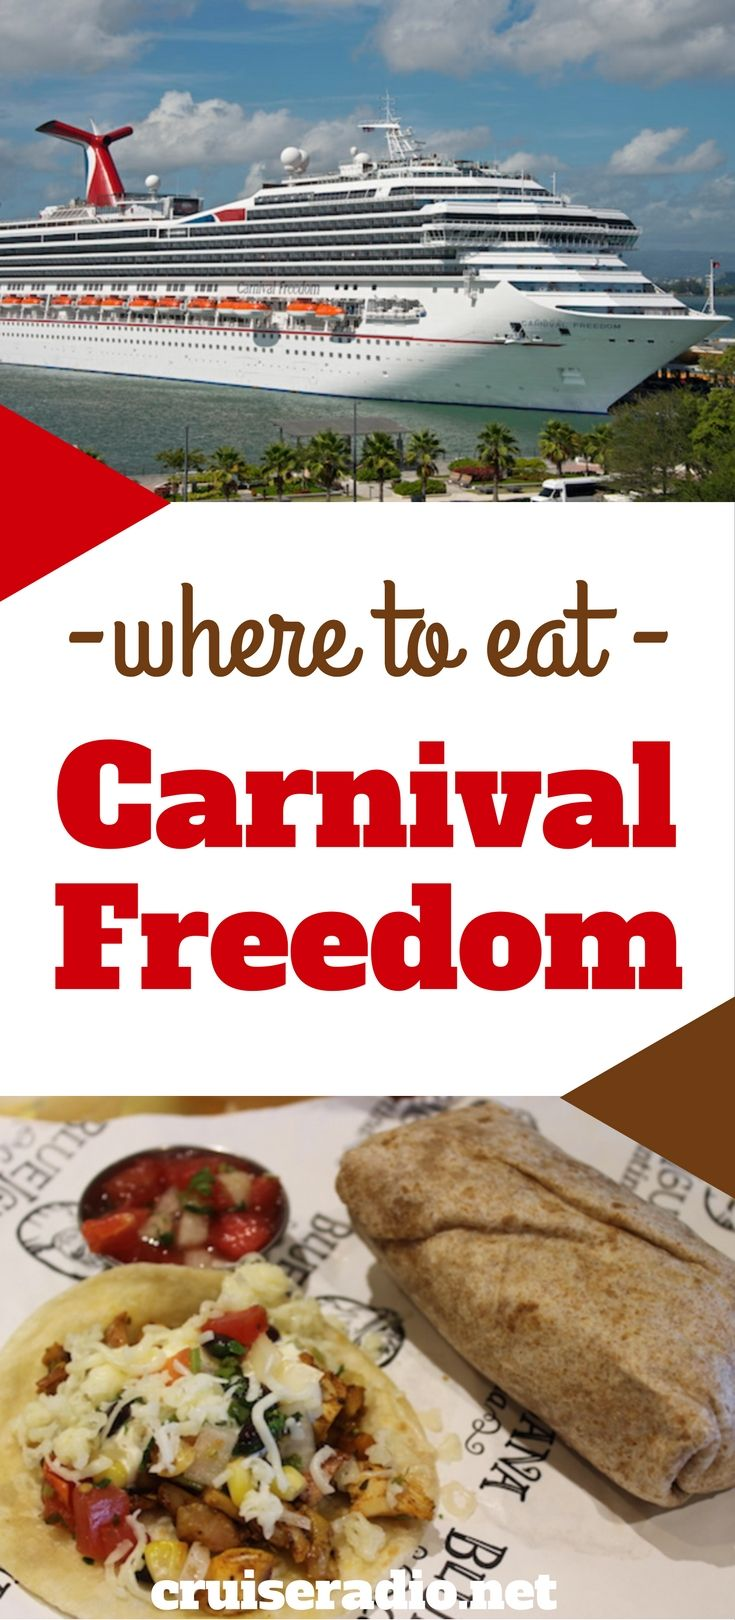 19 Places To Eat On Carnival Freedom Carnival Freedom Cruise Food Carnival Cruise Freedom